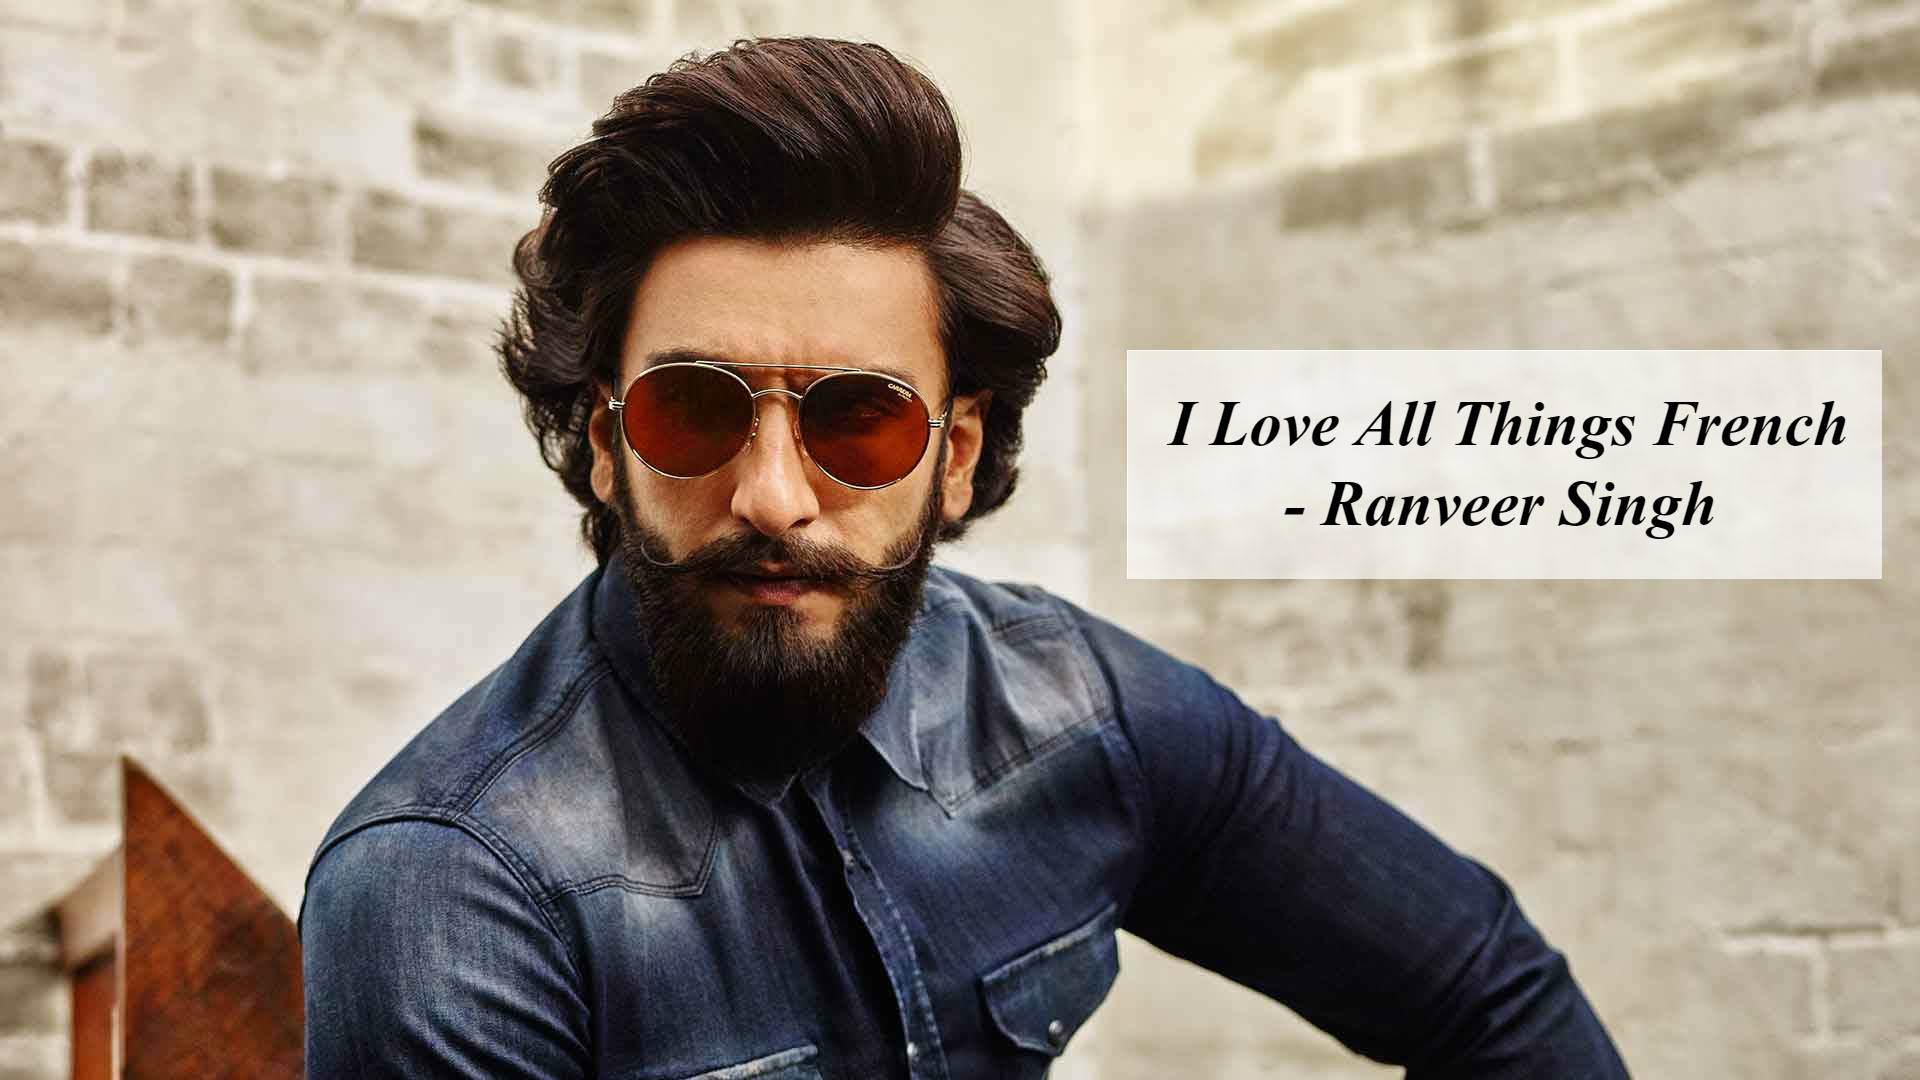 Ranveer Singh has been immortalized by the French